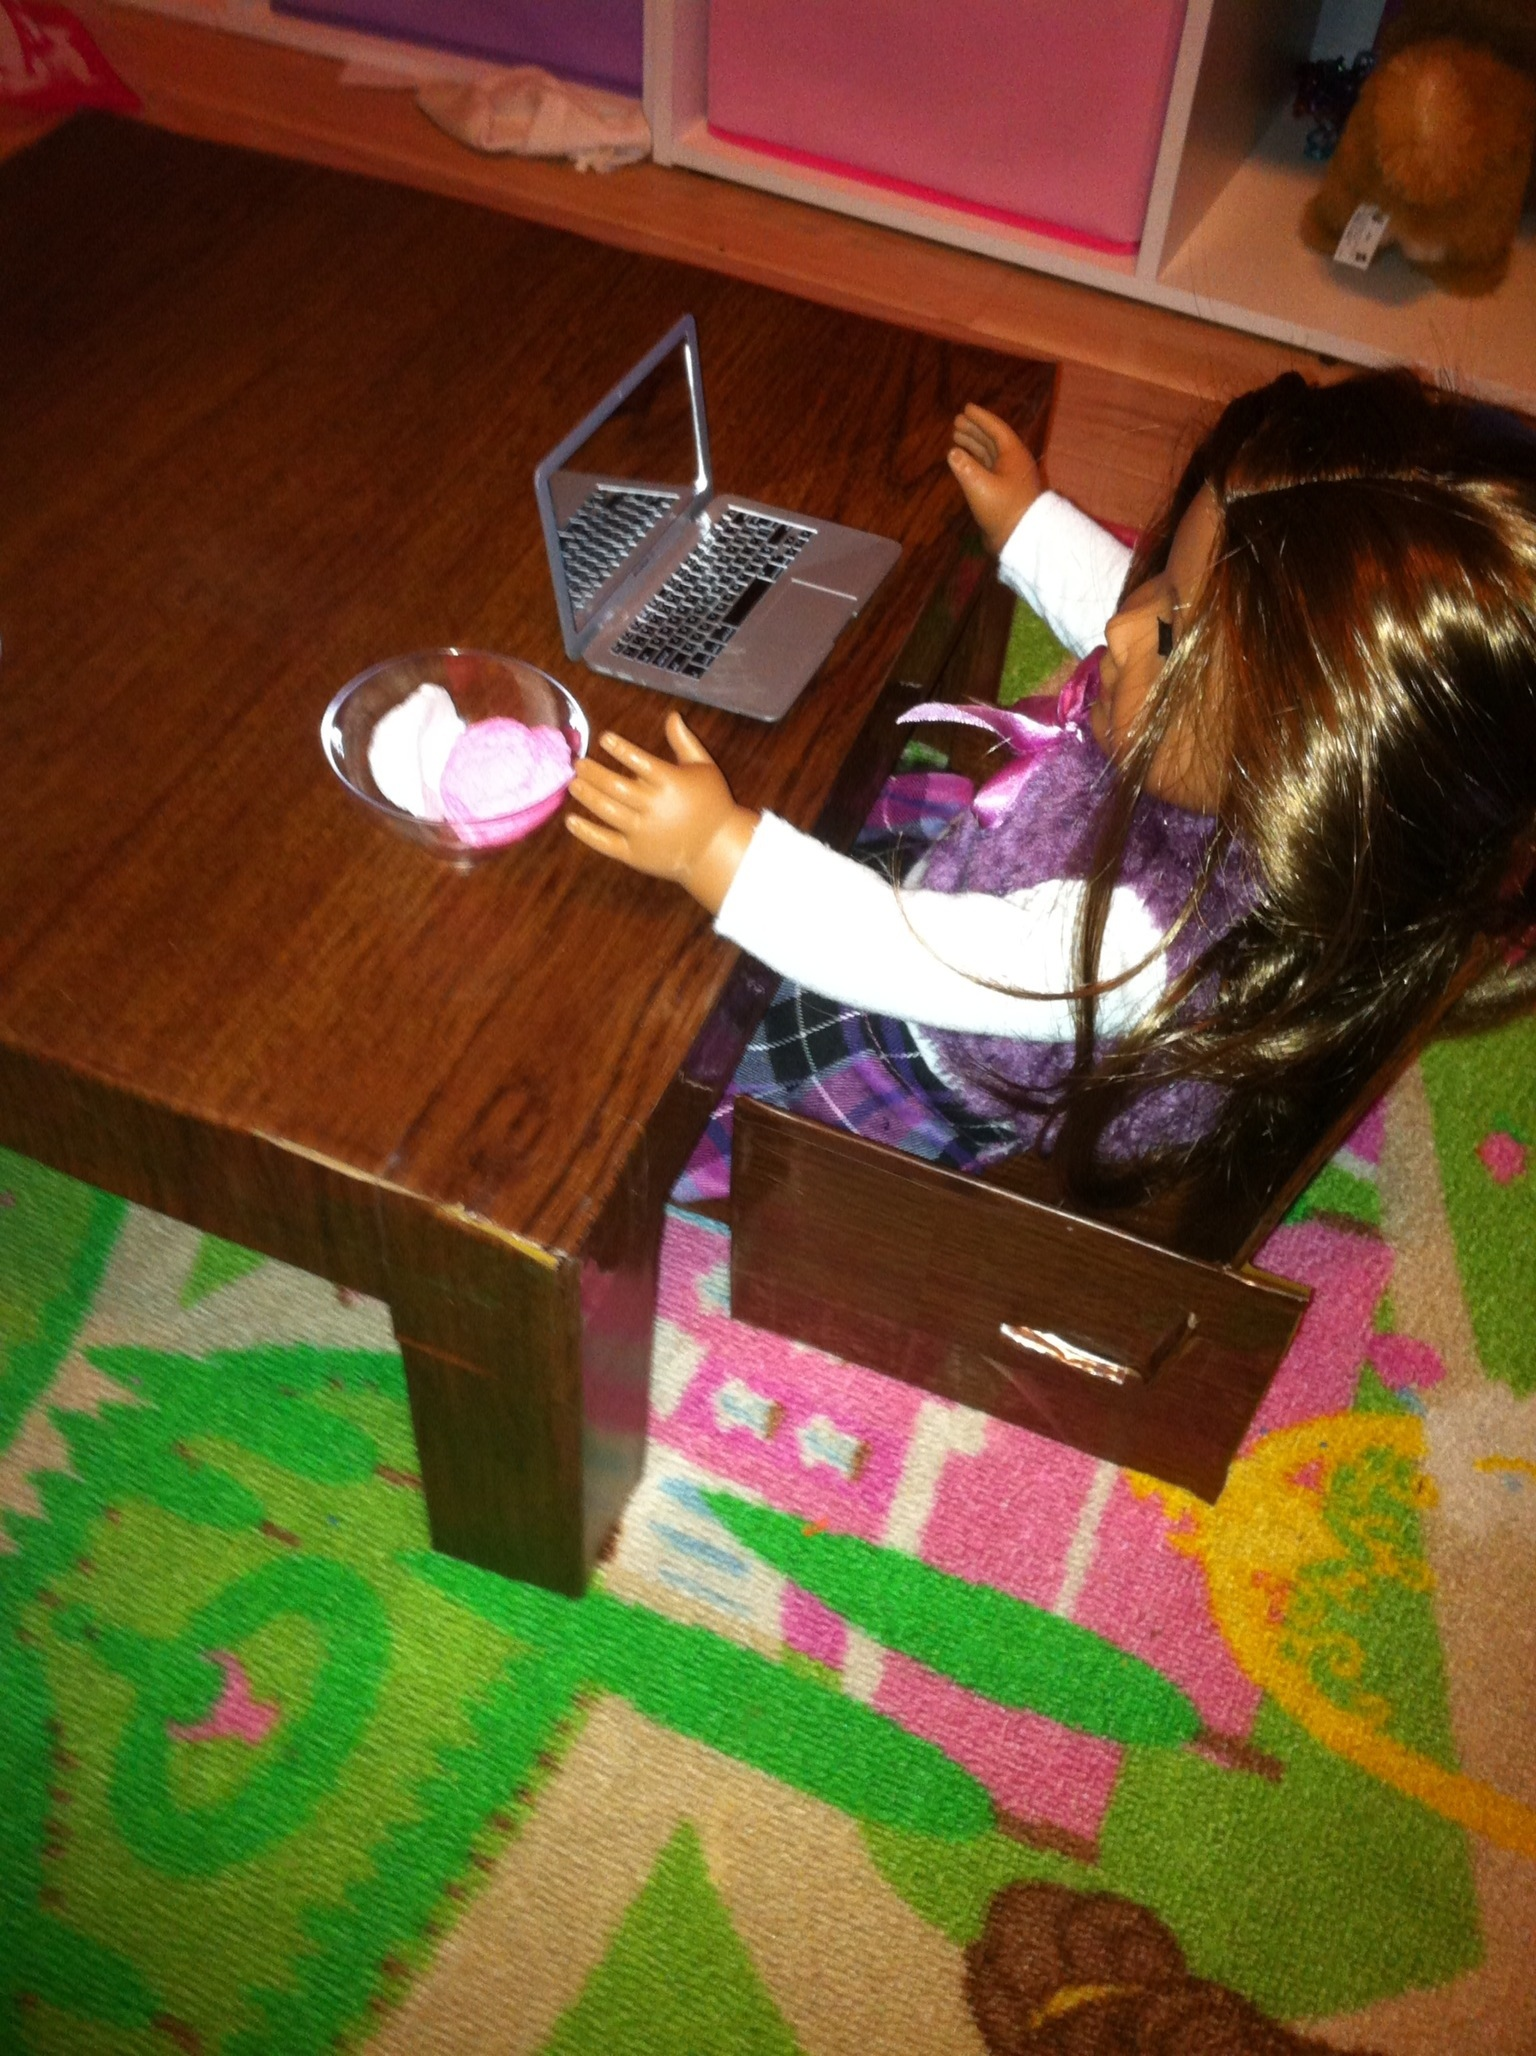 How To Make A Cardboard Chair Cardboard Table And Chairs For American Girl Or 18 Dolls